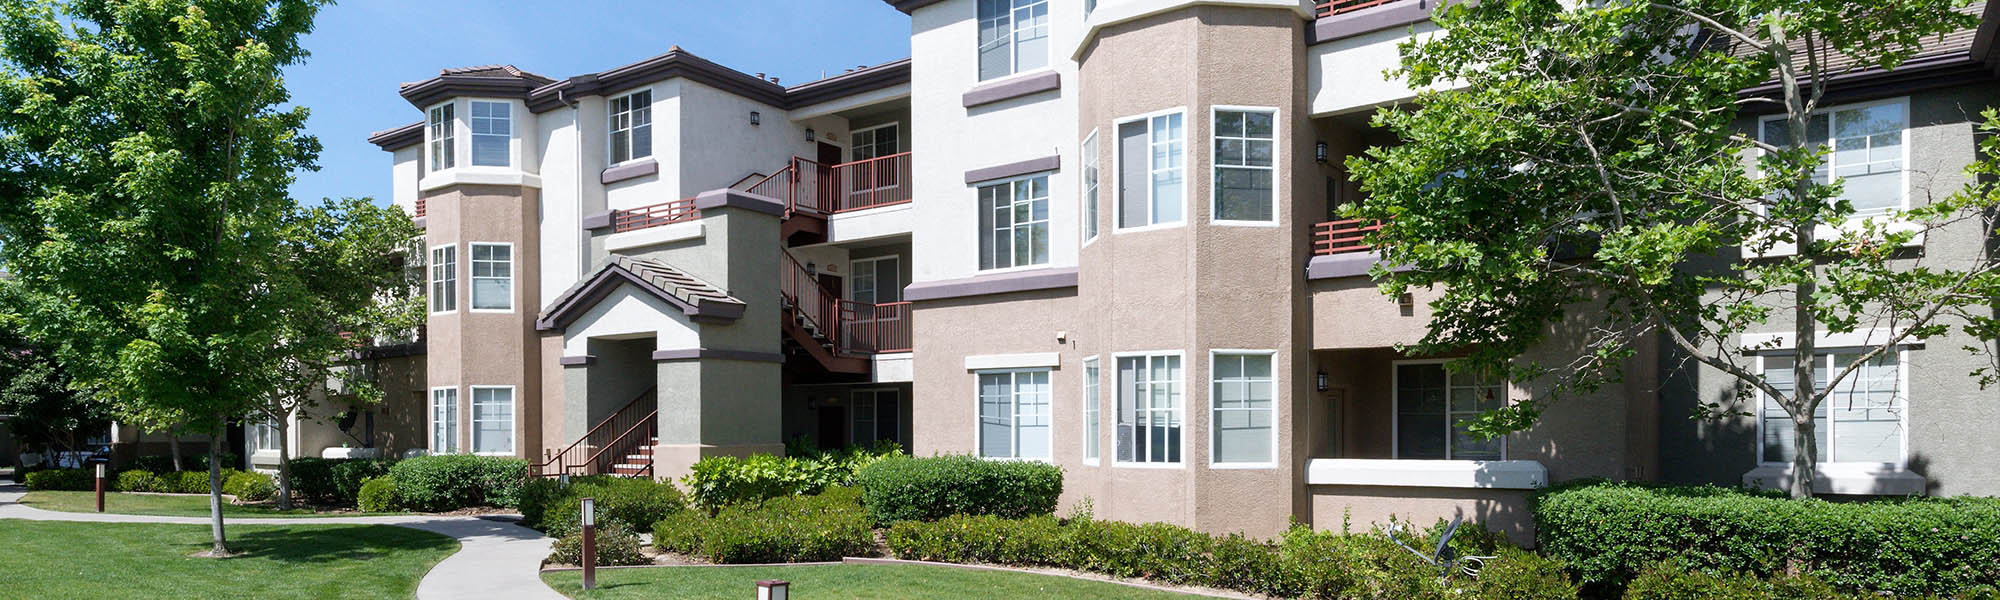 Learn about our neighborhood at The Artisan Apartment Homes in Sacramento, CA on our website